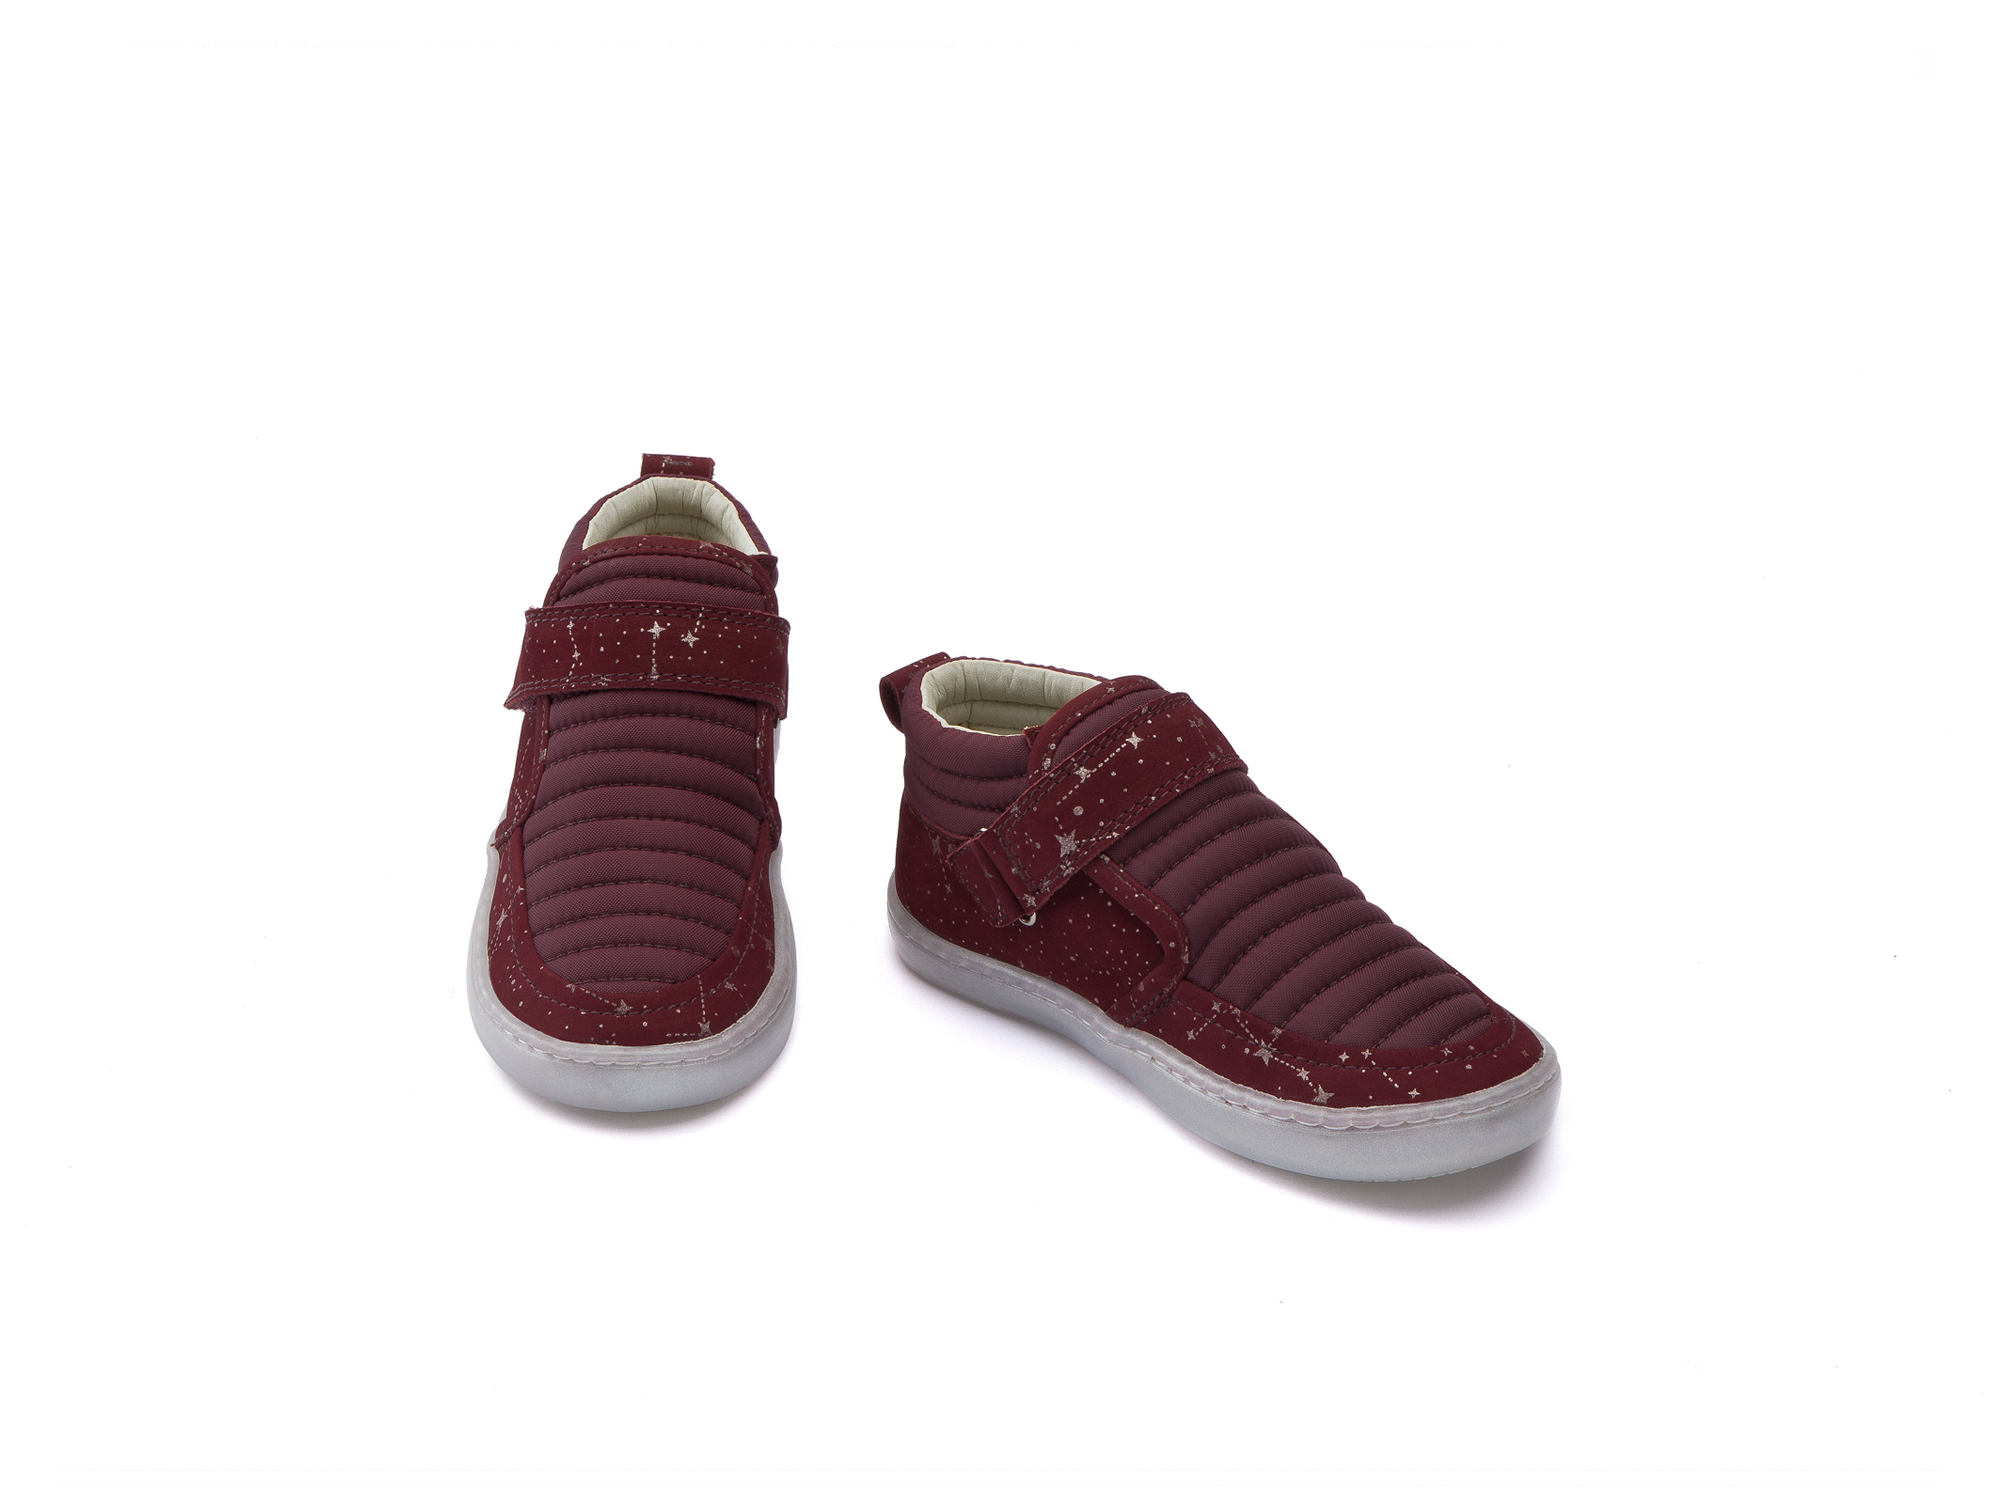 Bota Little Spacesuit Plum Nylon/ Ruby Space Toddler 2 à 4 anos - 2